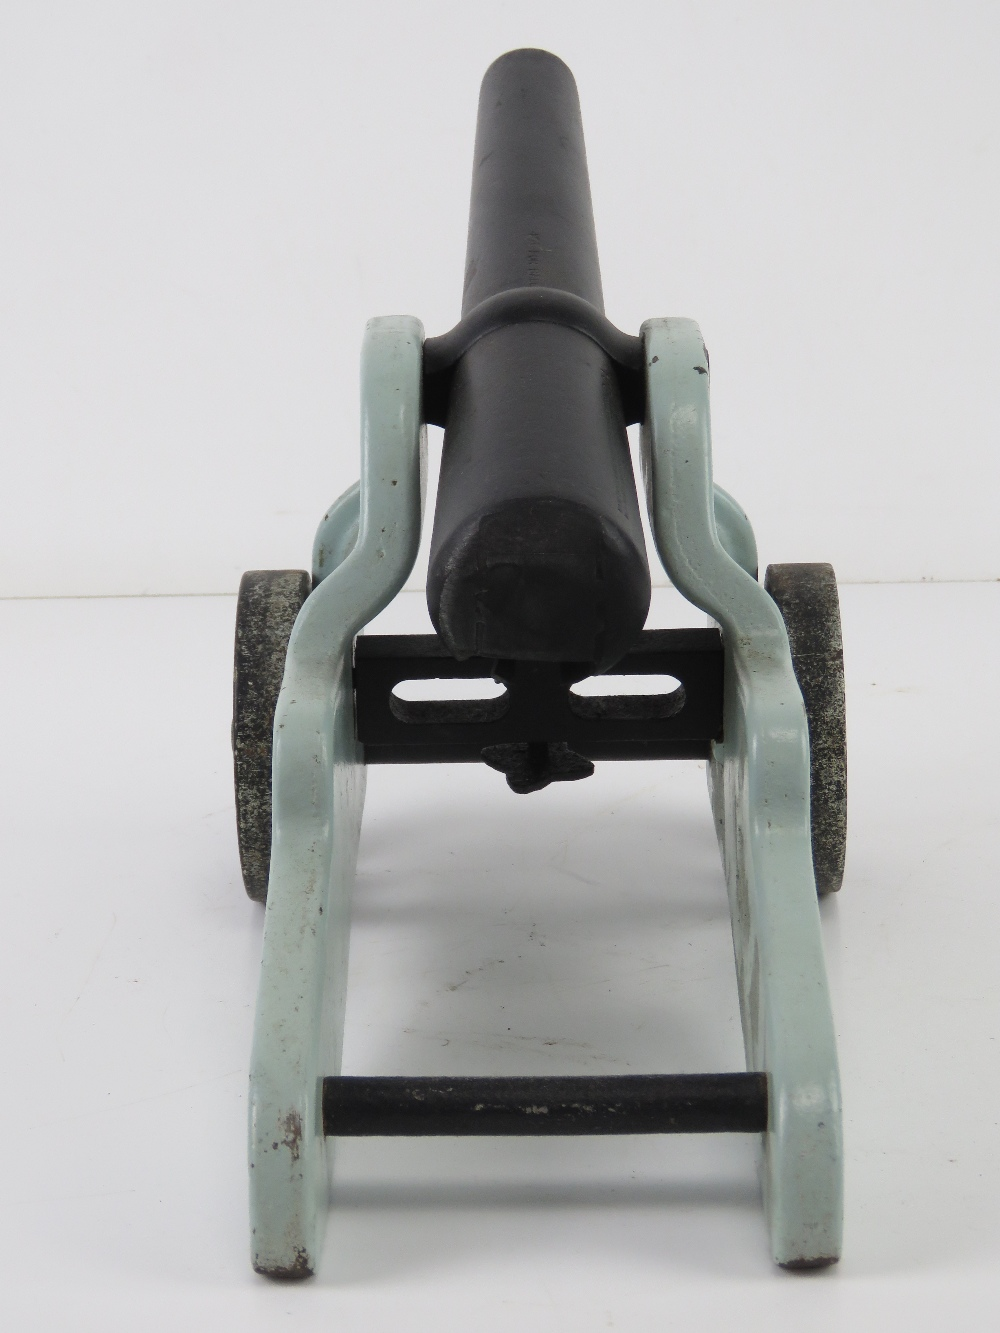 A deactivated Winchester 10 bore signal cannon W.R.A.Co, trademark registered in USA. - Image 4 of 8